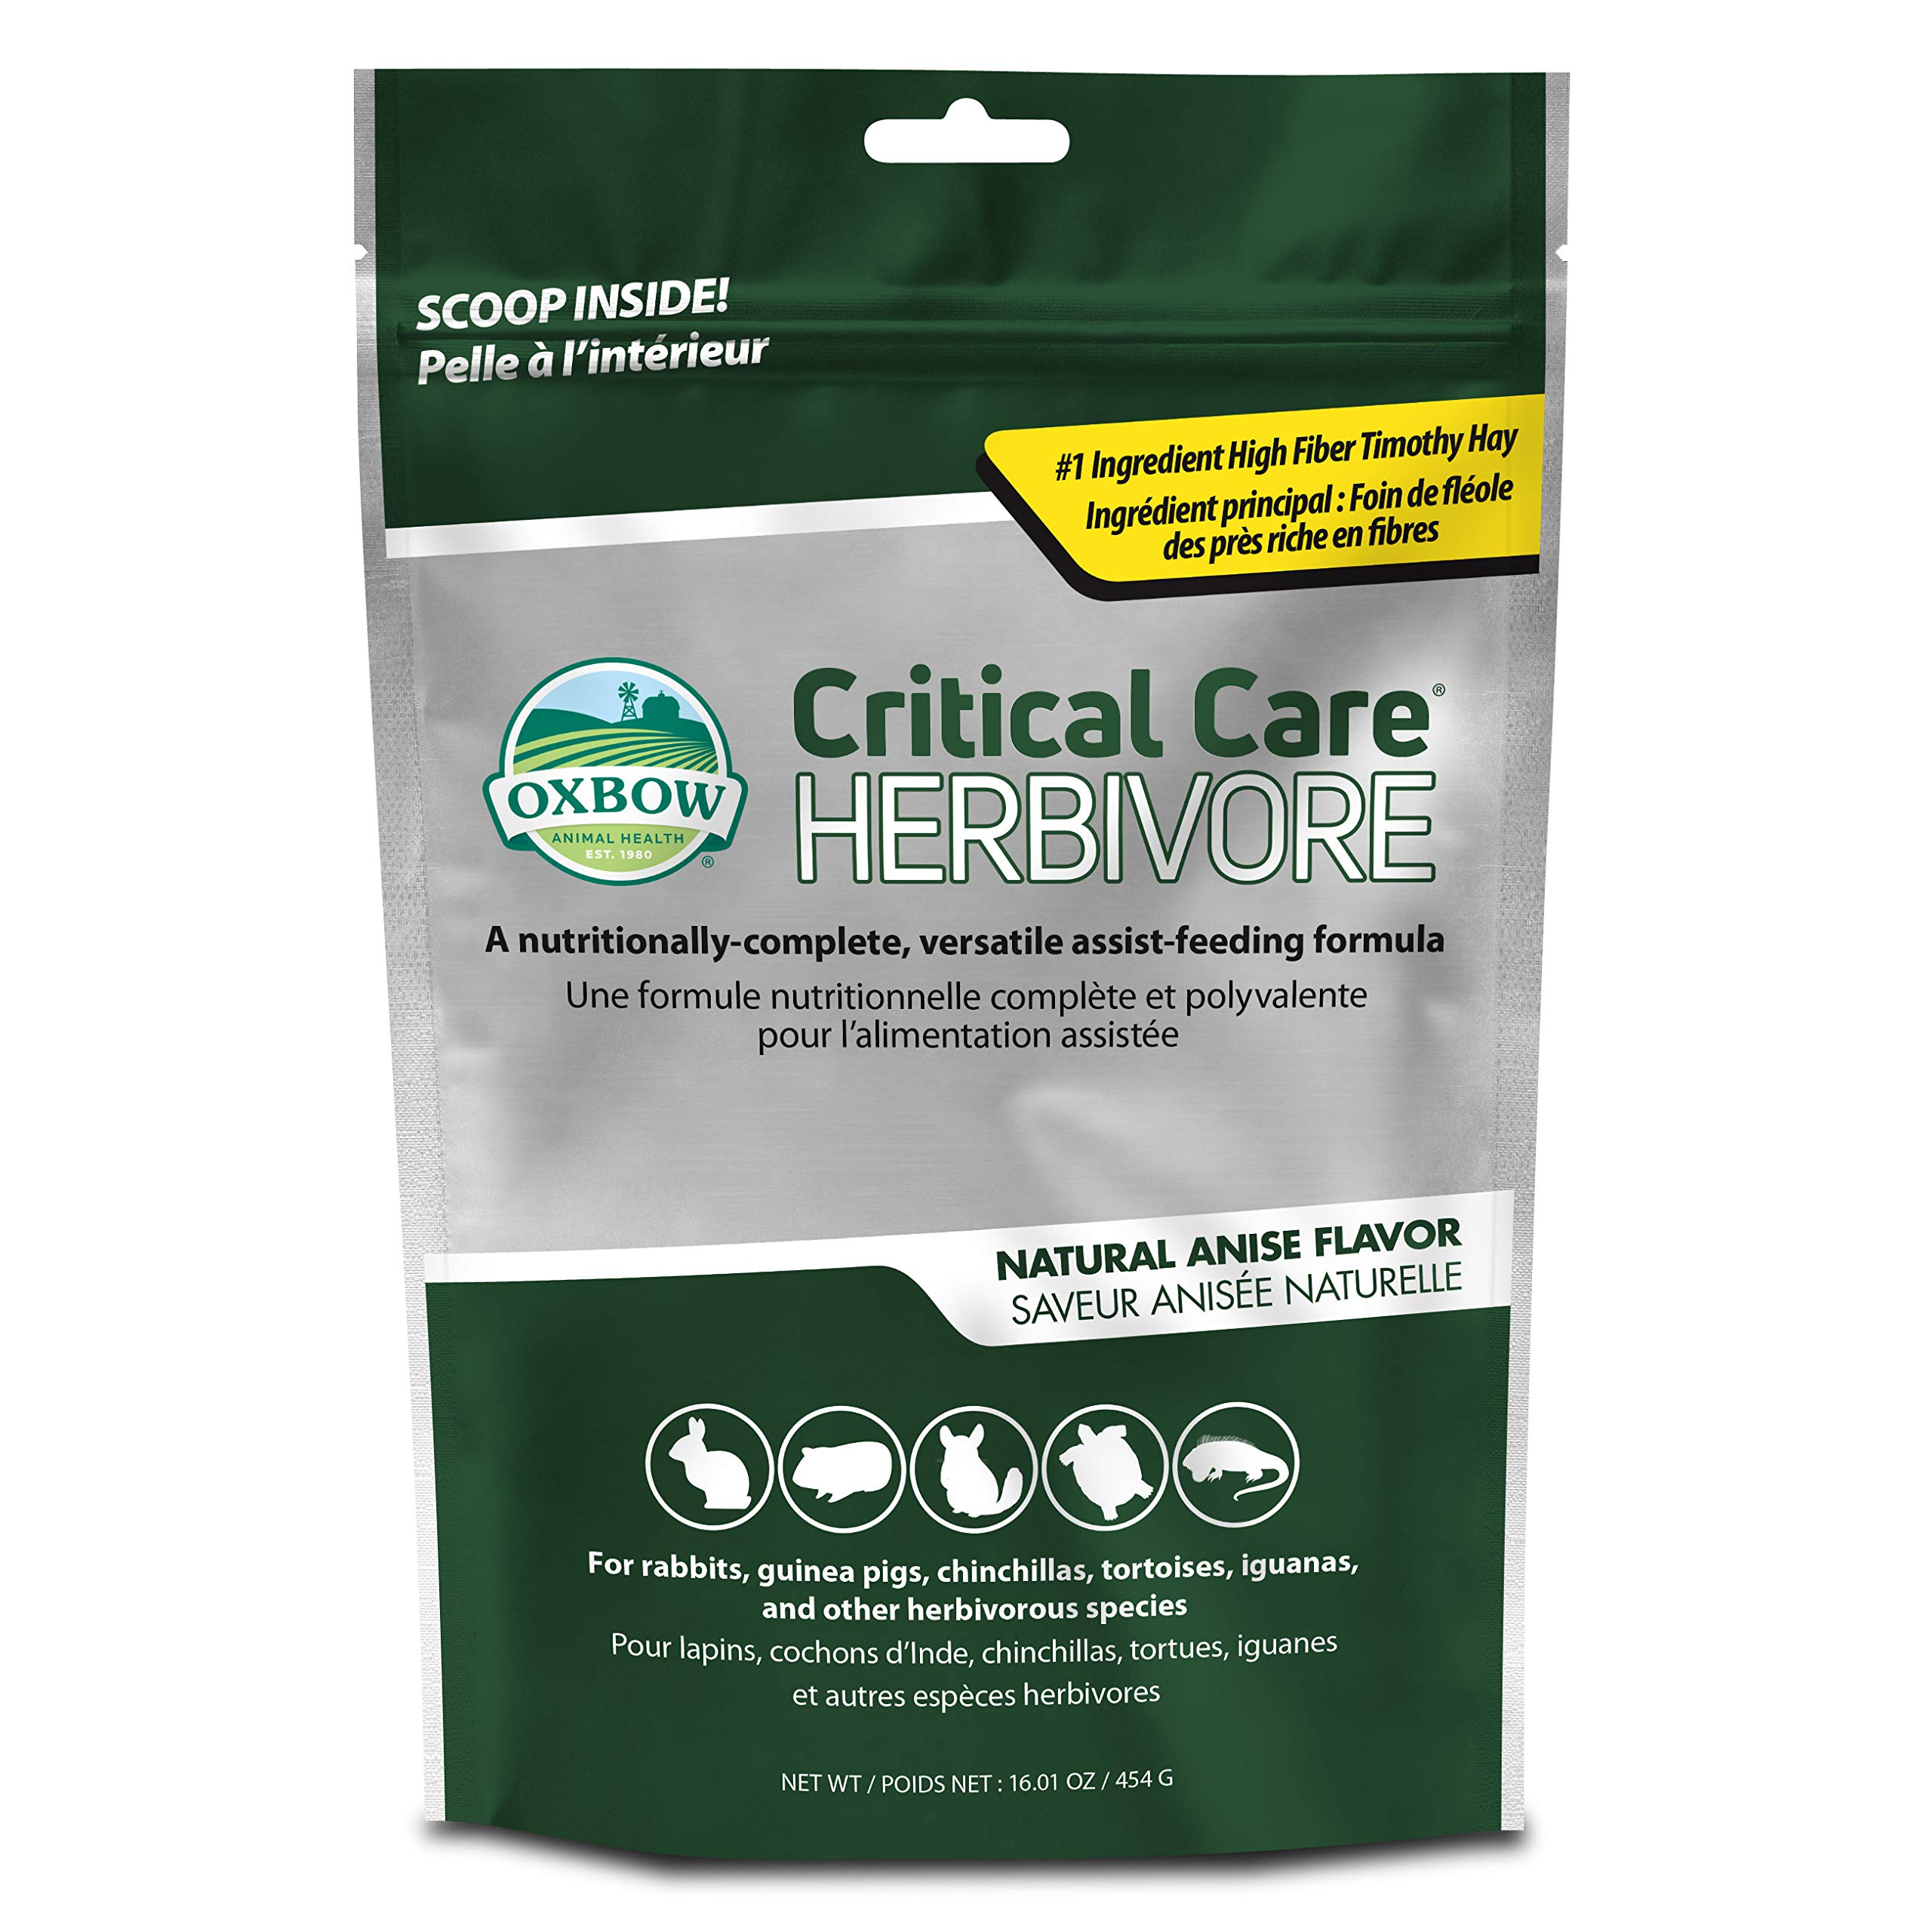 Oxbow Animal Health Critical Care, Herbivore, Anise Flavor, 454 Gram Bag, 70104